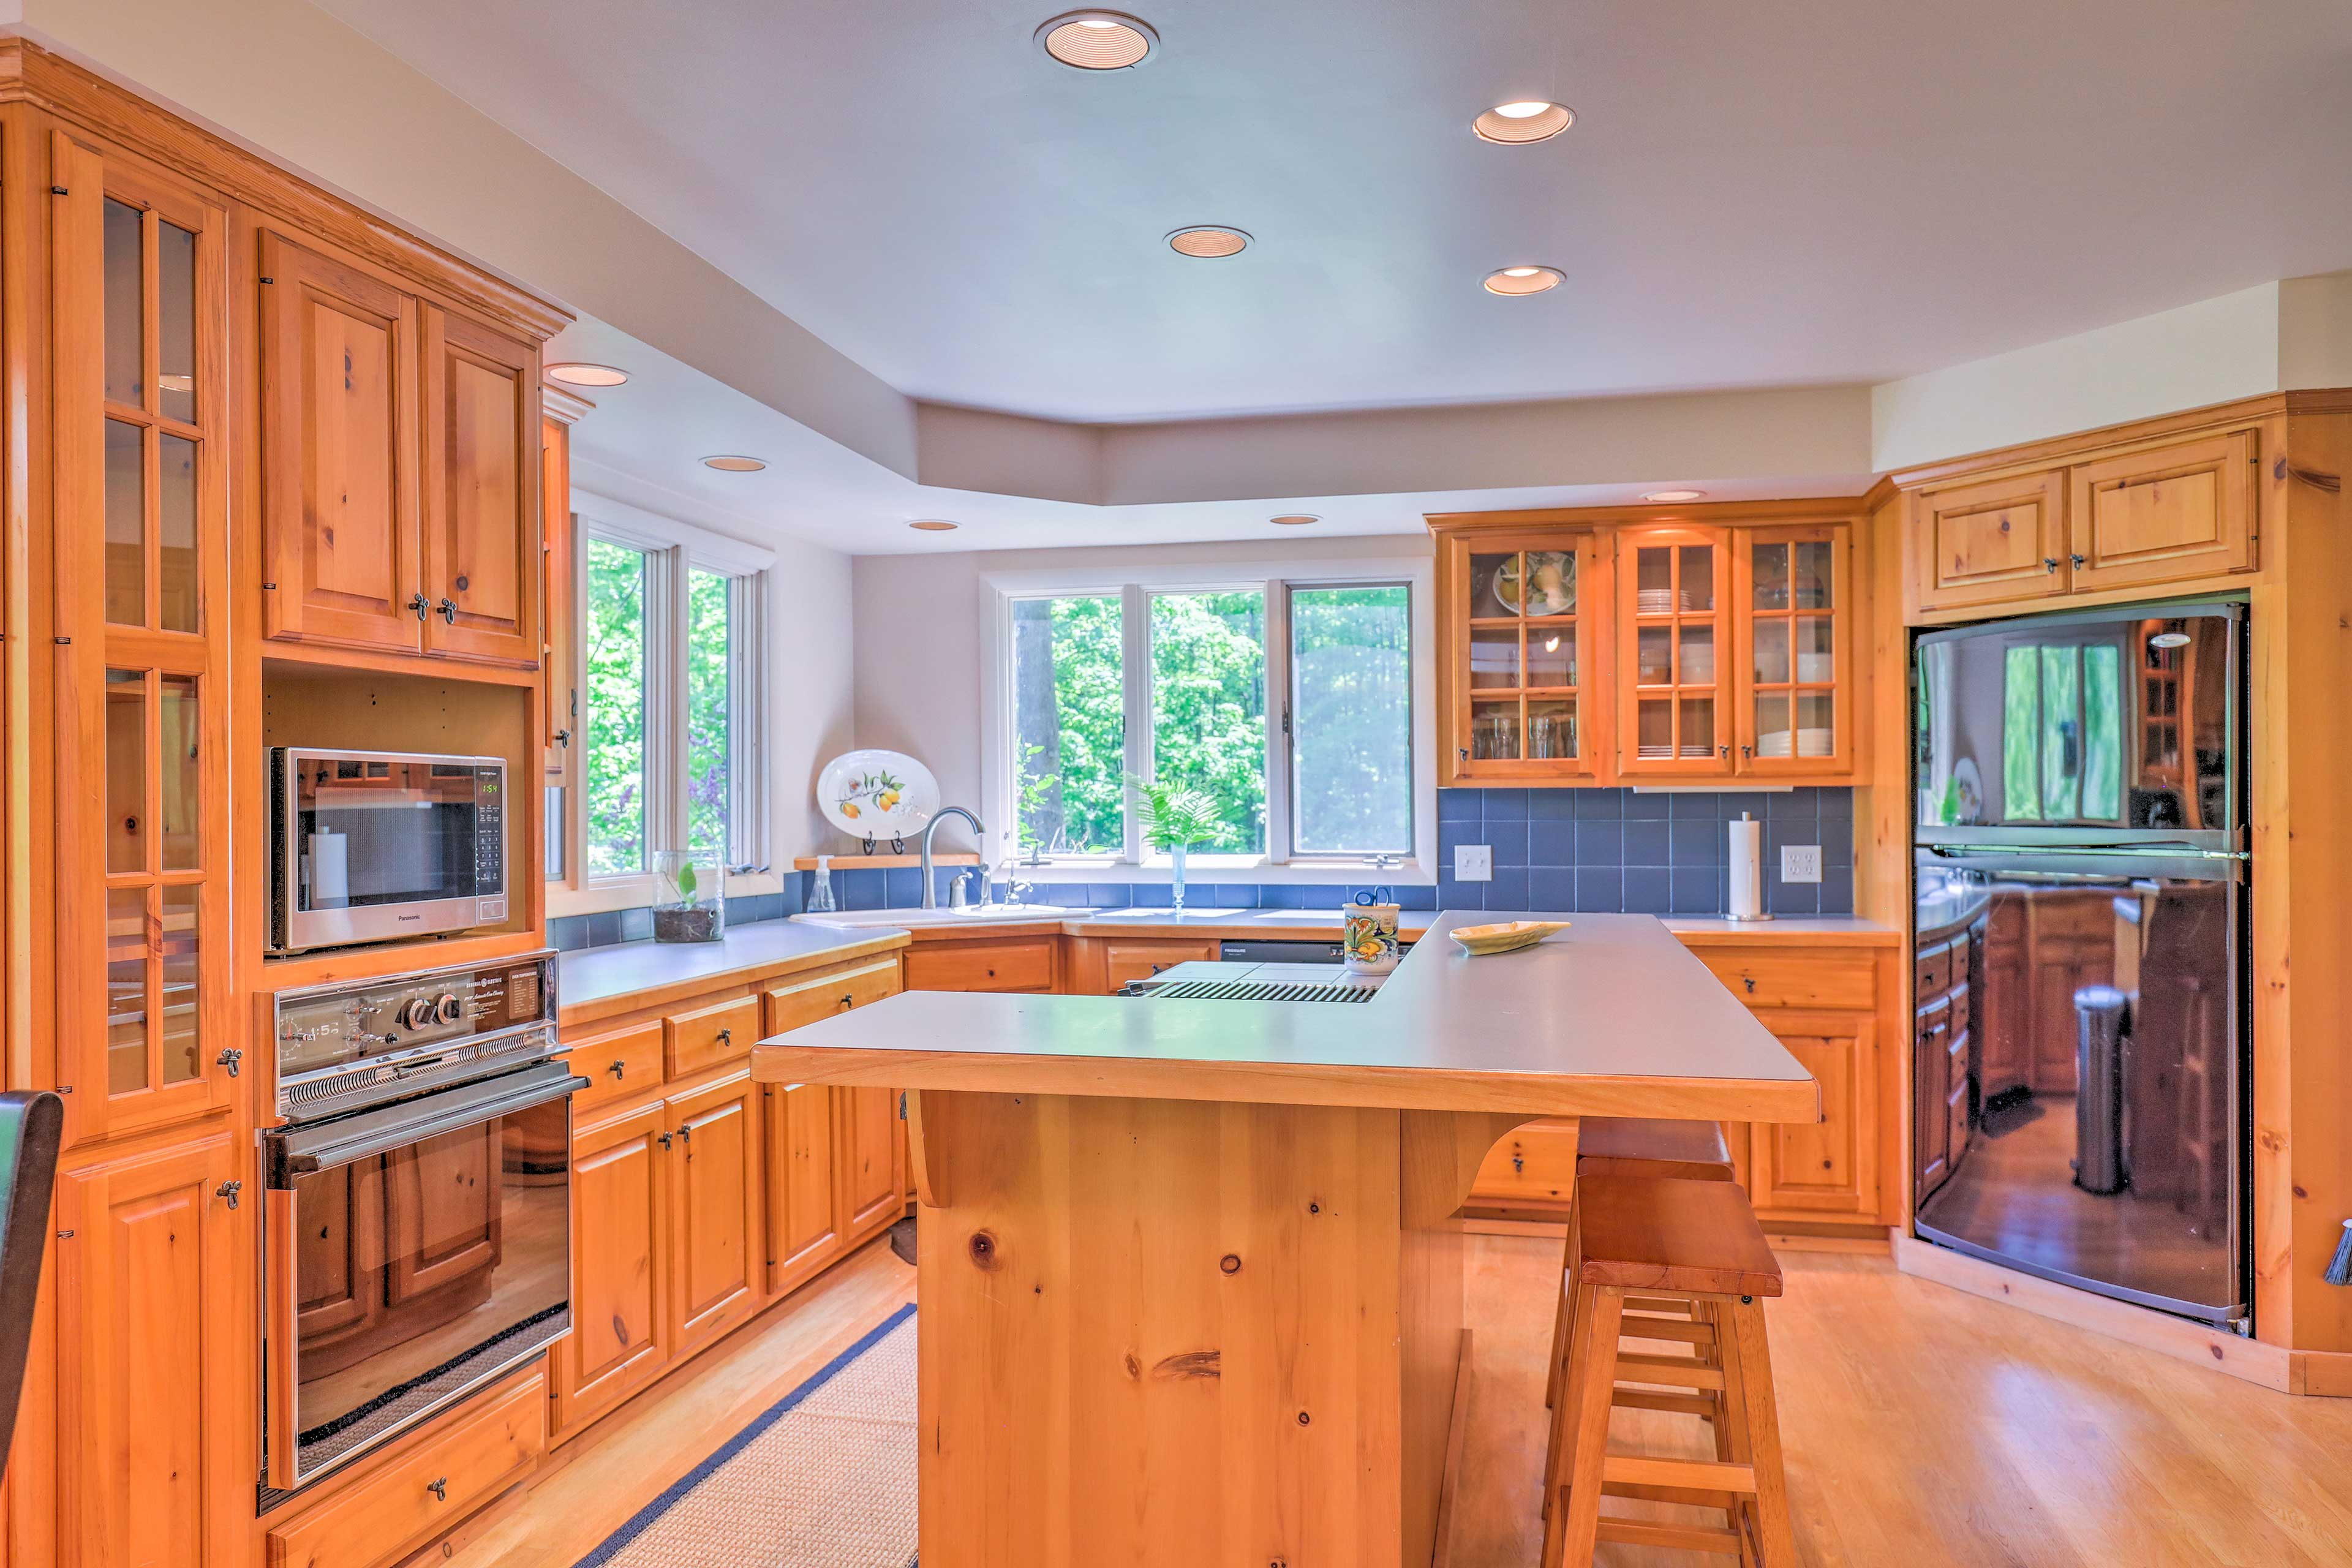 Sleek wood paneling details the fully equipped kitchen.